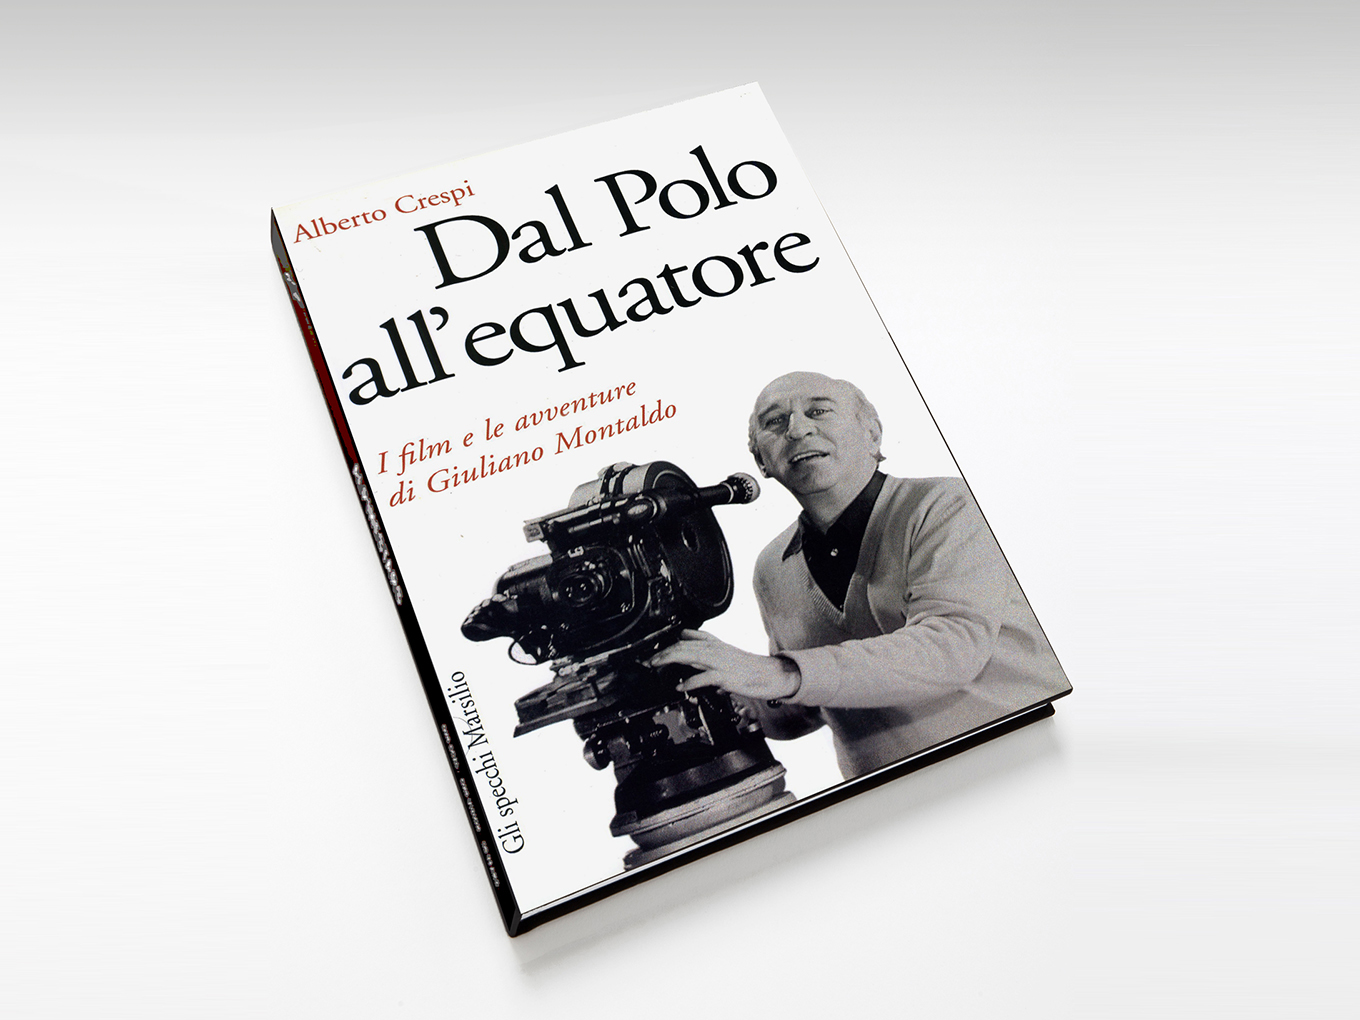 Dal polo all'equatore